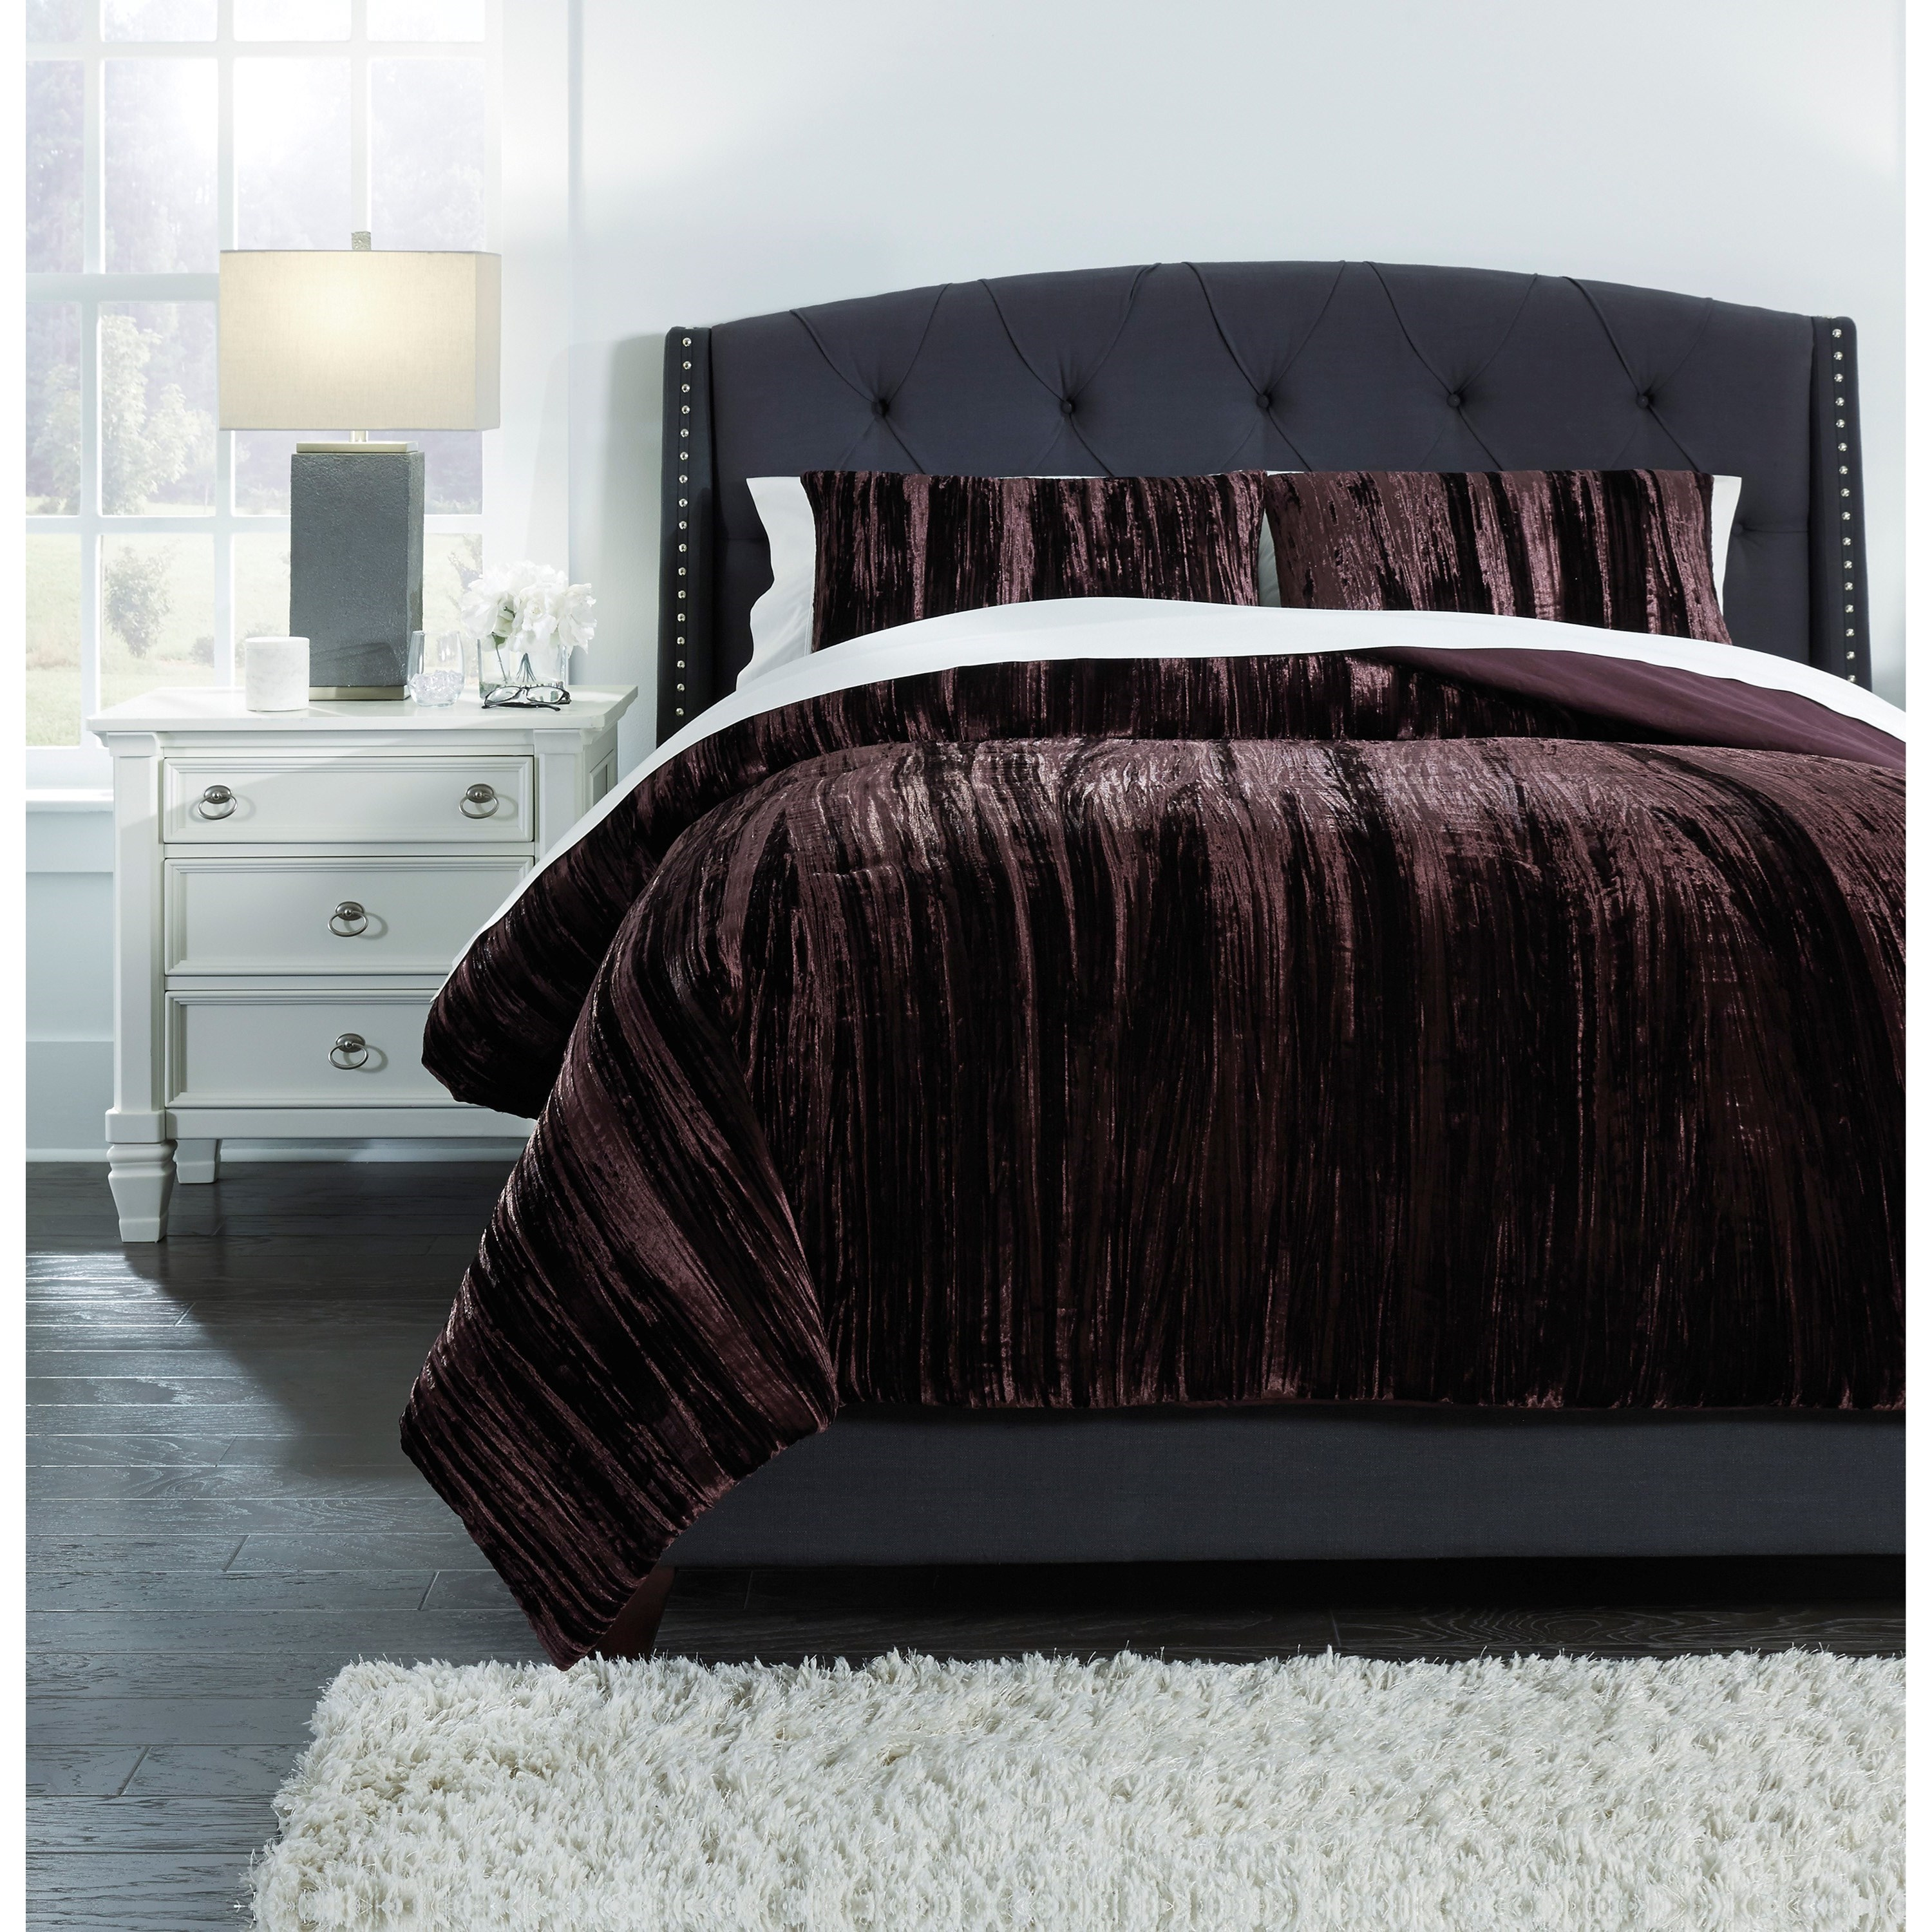 Bedding Sets King Wanete Wine Comforter Set by Signature Design by Ashley at Northeast Factory Direct